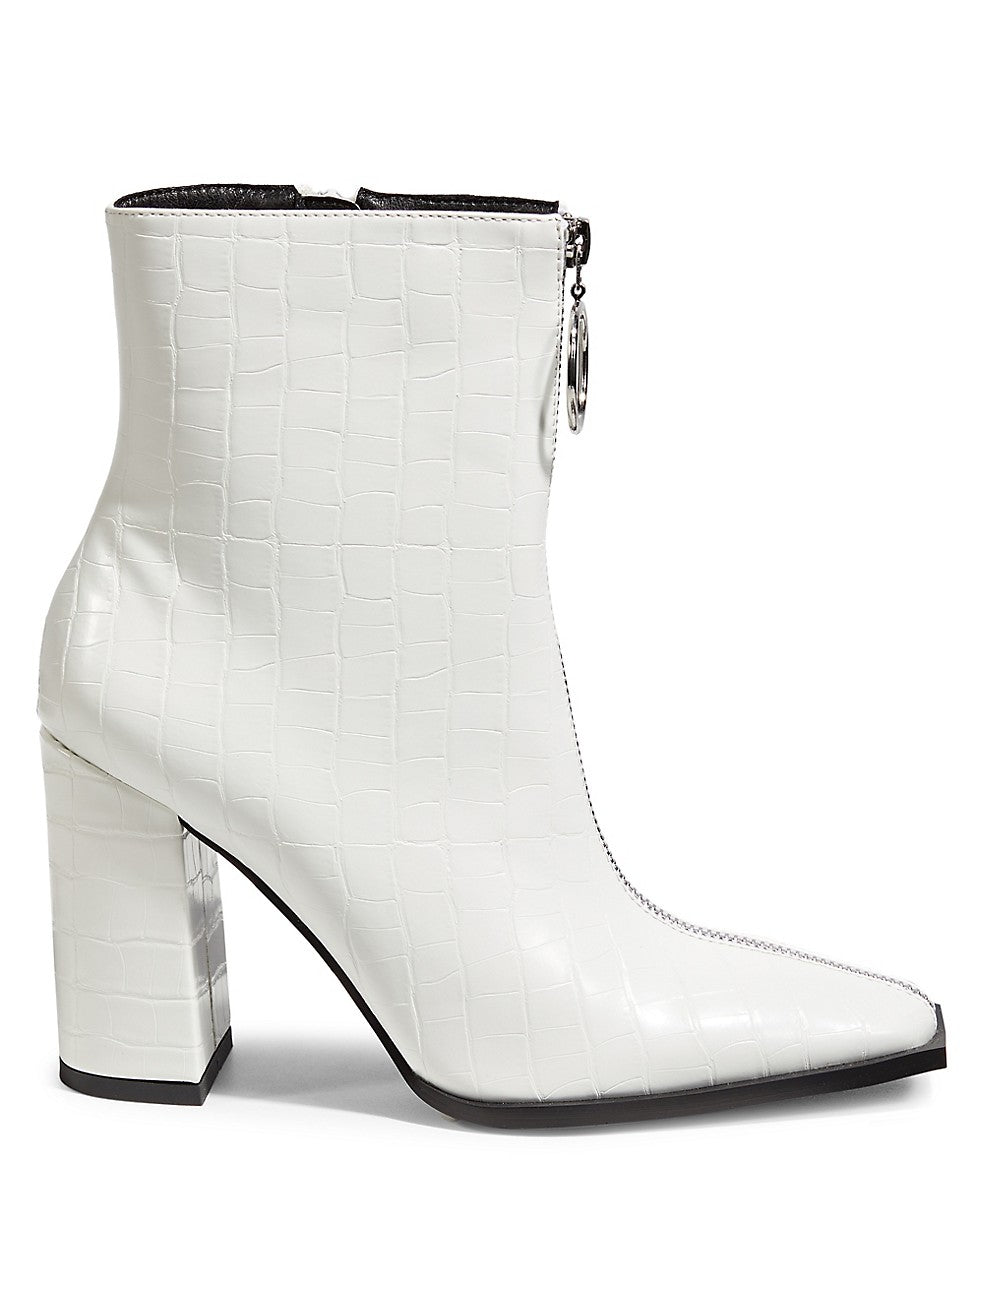 Payback Croc-Embossed Square-Toe Zip Boots